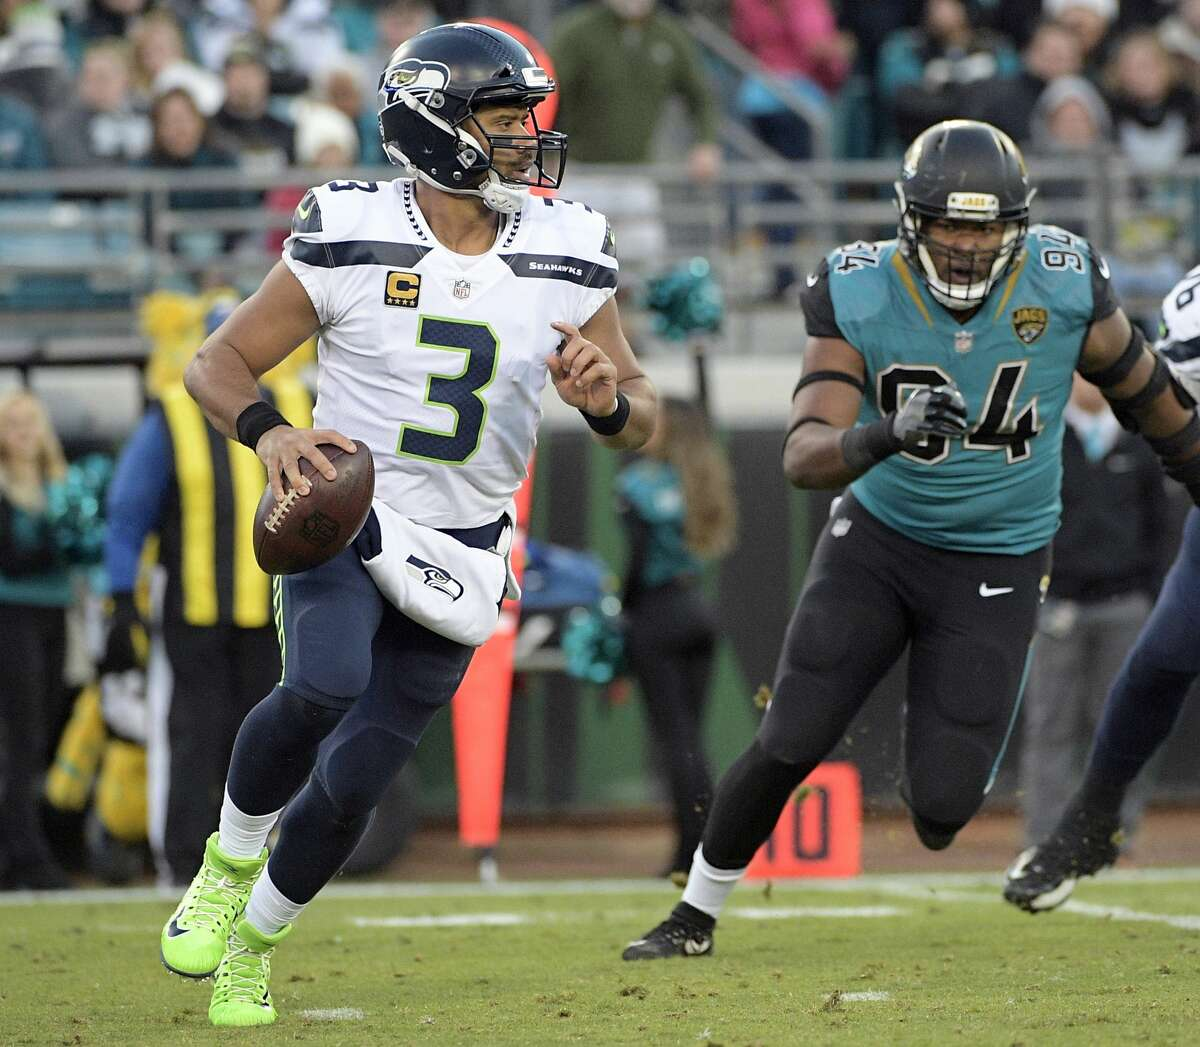 Seattle Seahawks quarterback Russell Wilson (3) scrambles as he is pressured by Jacksonville Jaguars defensive end Dawuane Smoot (94) during the first half of an NFL football game, Sunday, Dec. 10, 2017, in Jacksonville, Fla. (AP Photo/Phelan M. Ebenhack)